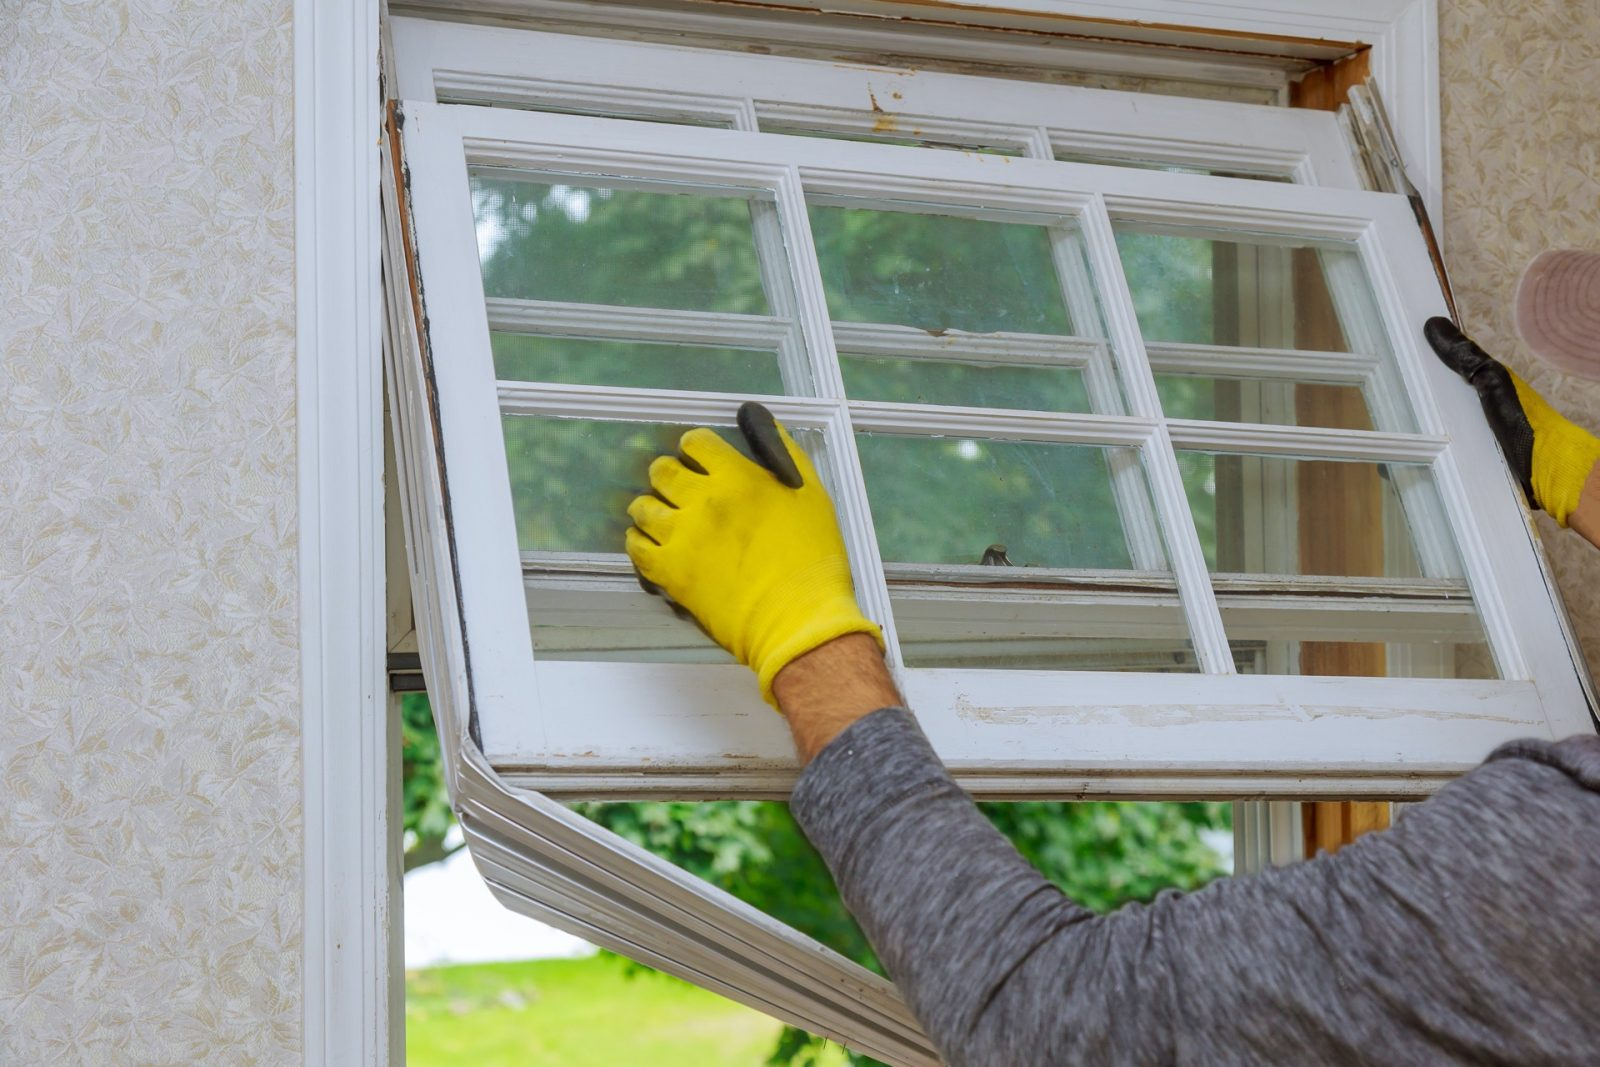 Windows Repair & Services Workers preparing to master removes old wooden windows in home renovation, energy efficiency concept